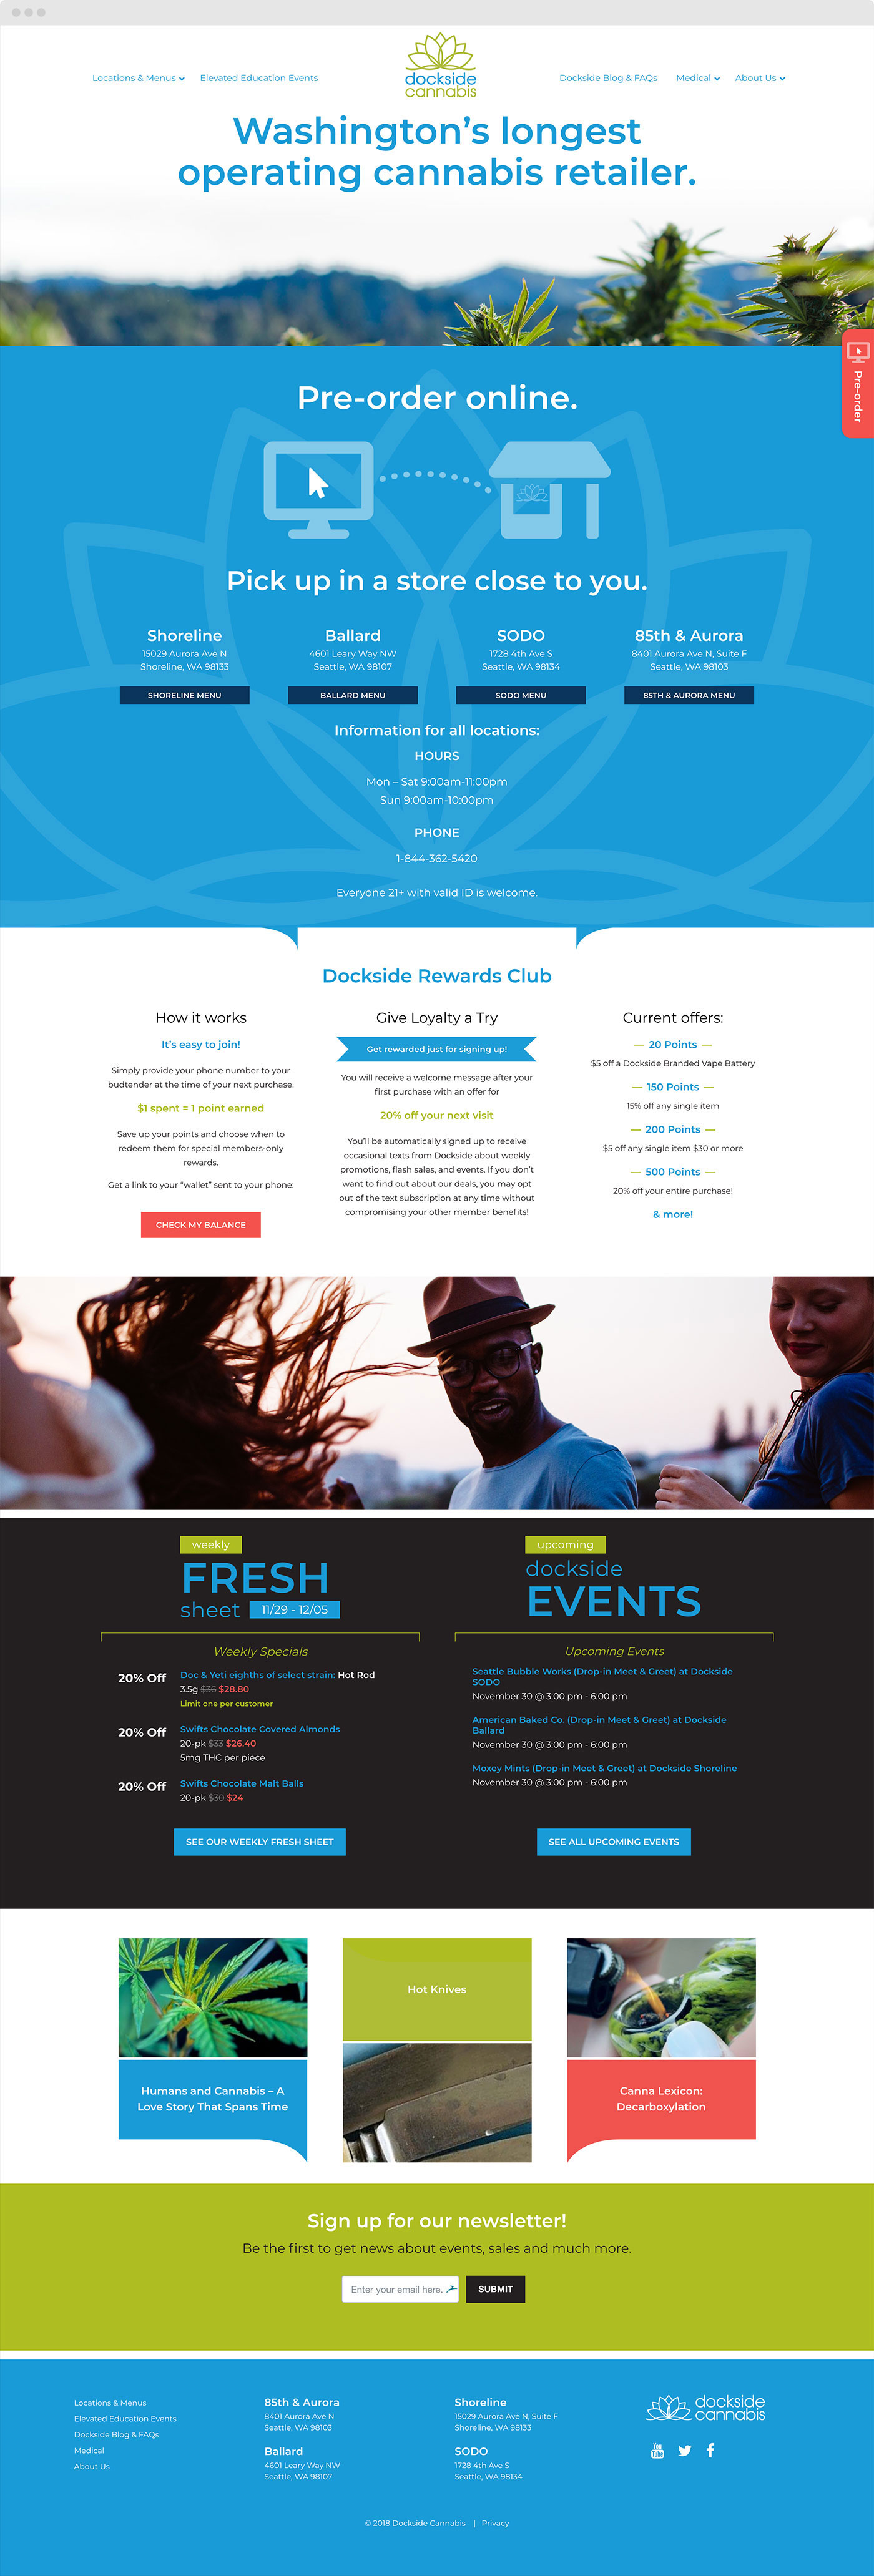 Dockside Cannabis Website Home Page Designed by Craig Labenz